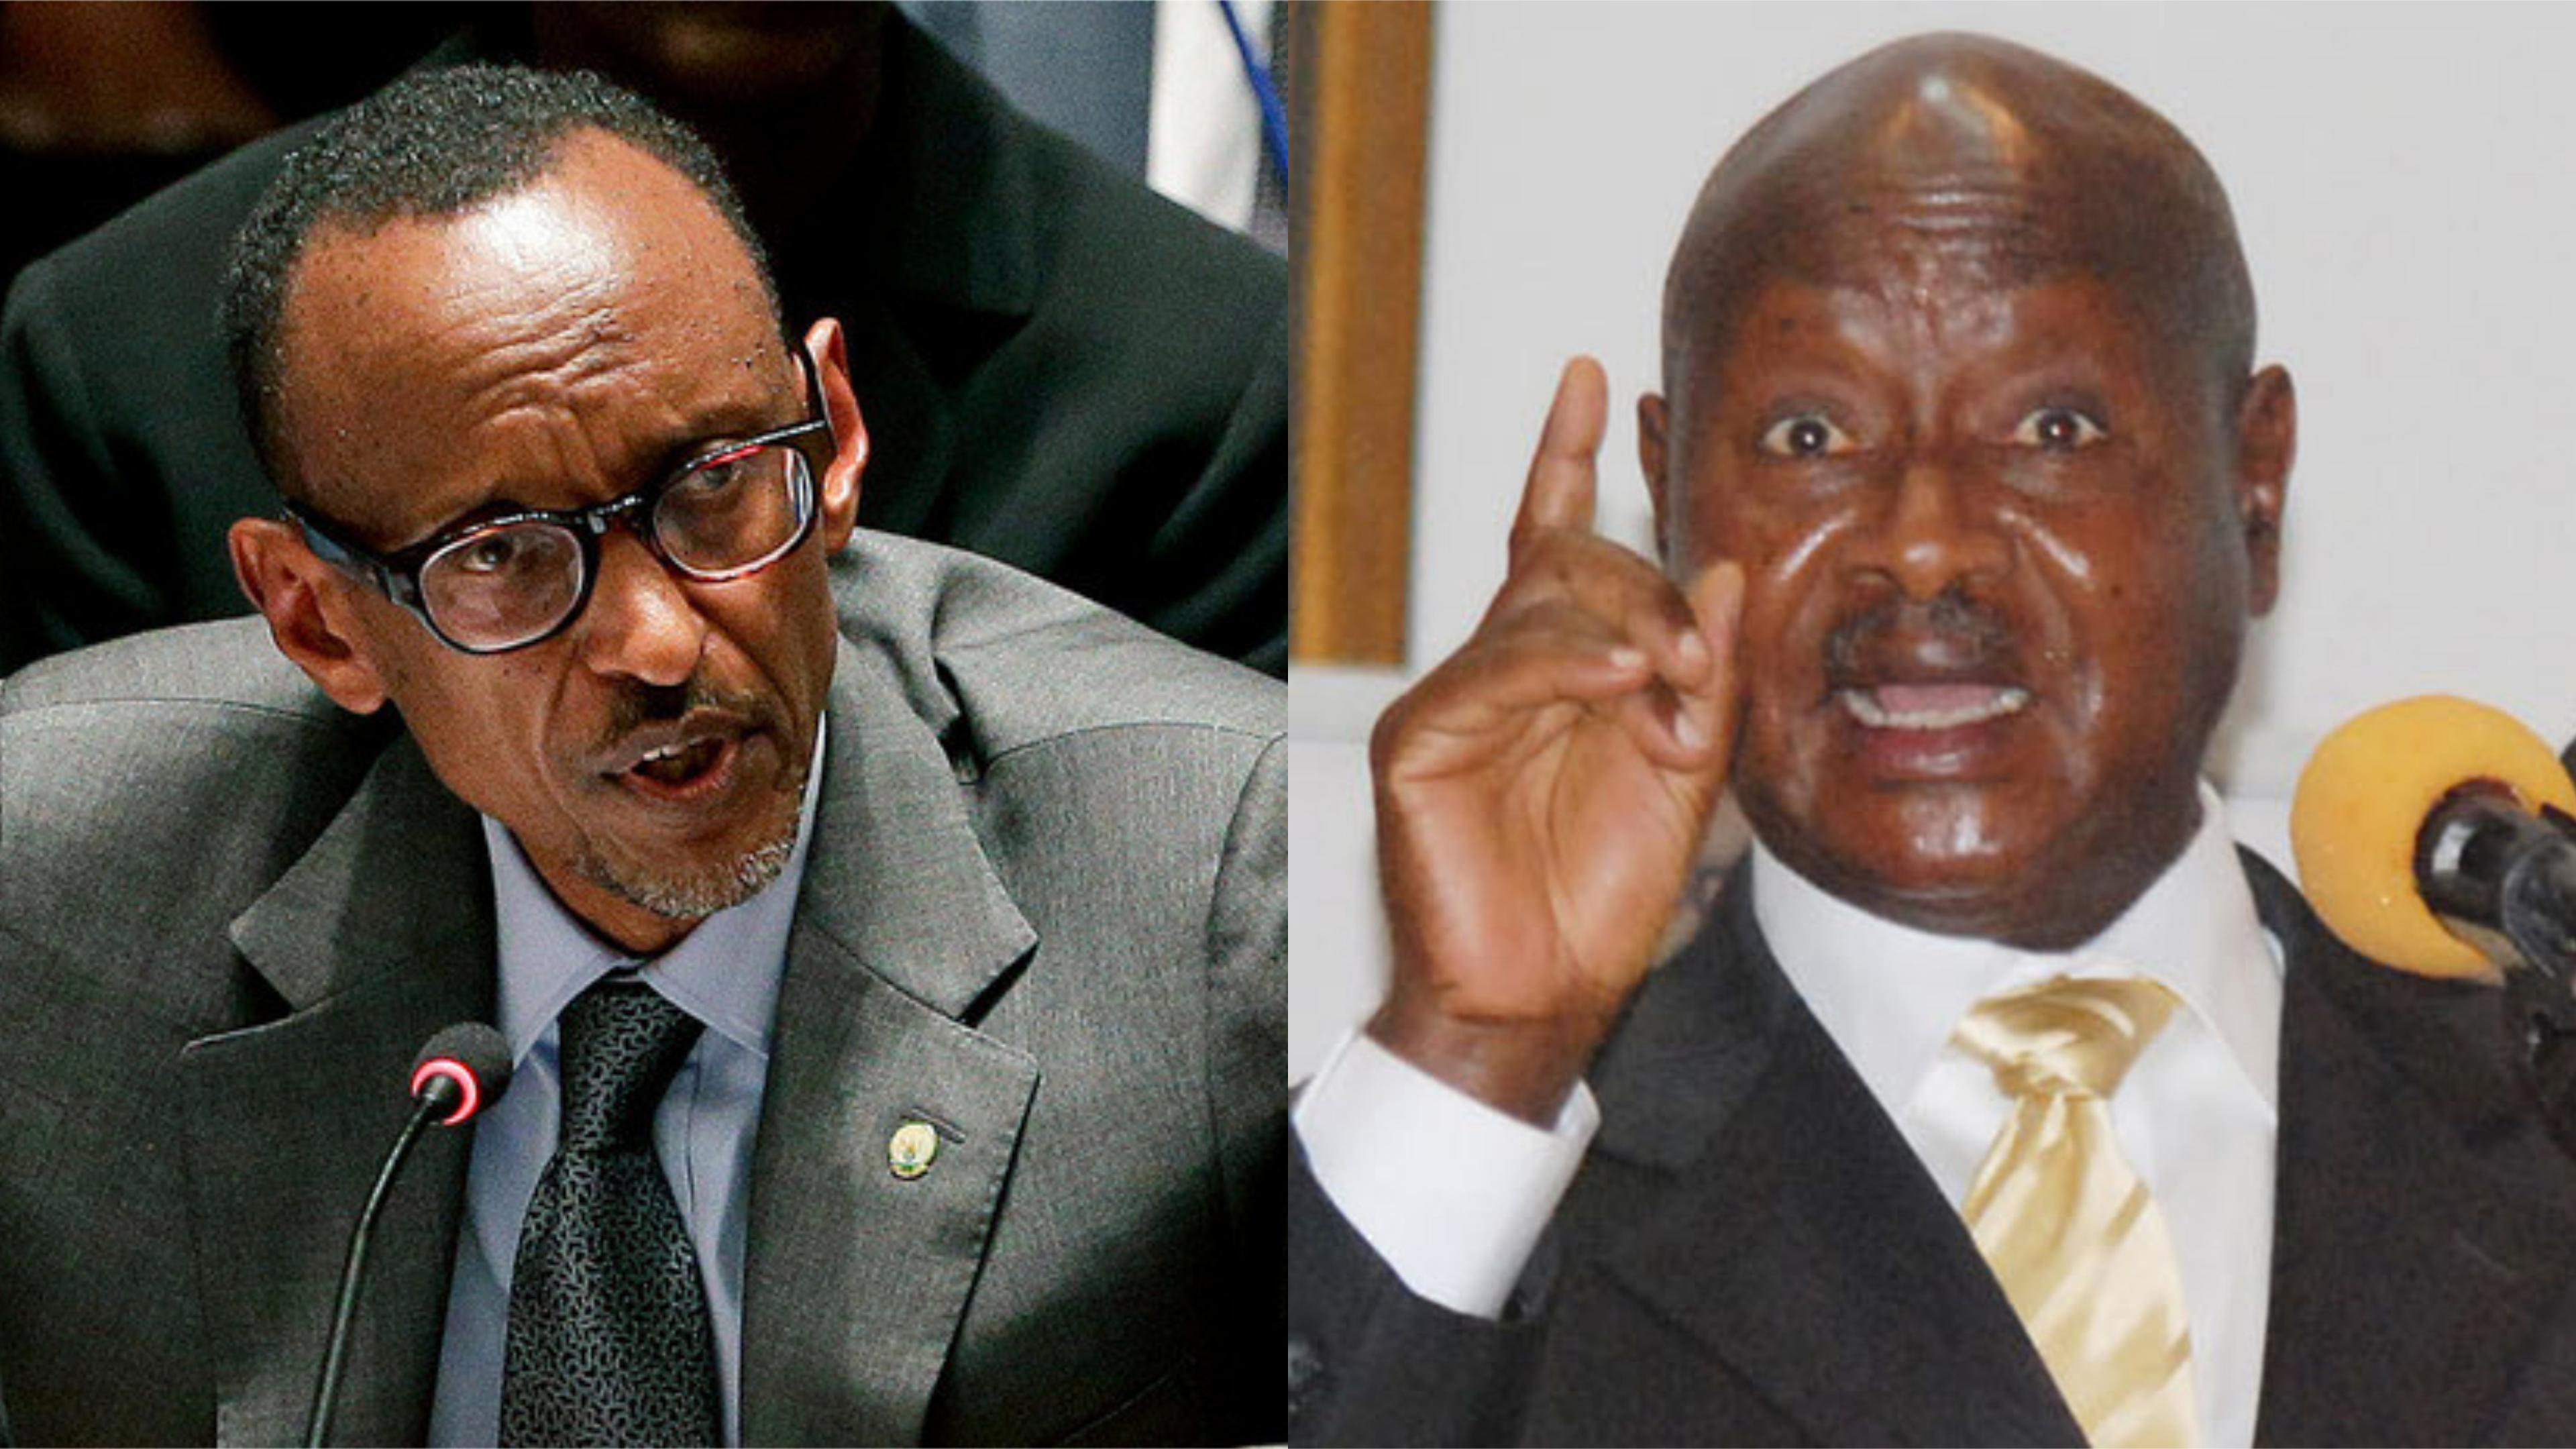 (R-L) Presidents Yoweri Museveni of Uganda and Paul Kagame of Rwanda. (PHOTO/File)